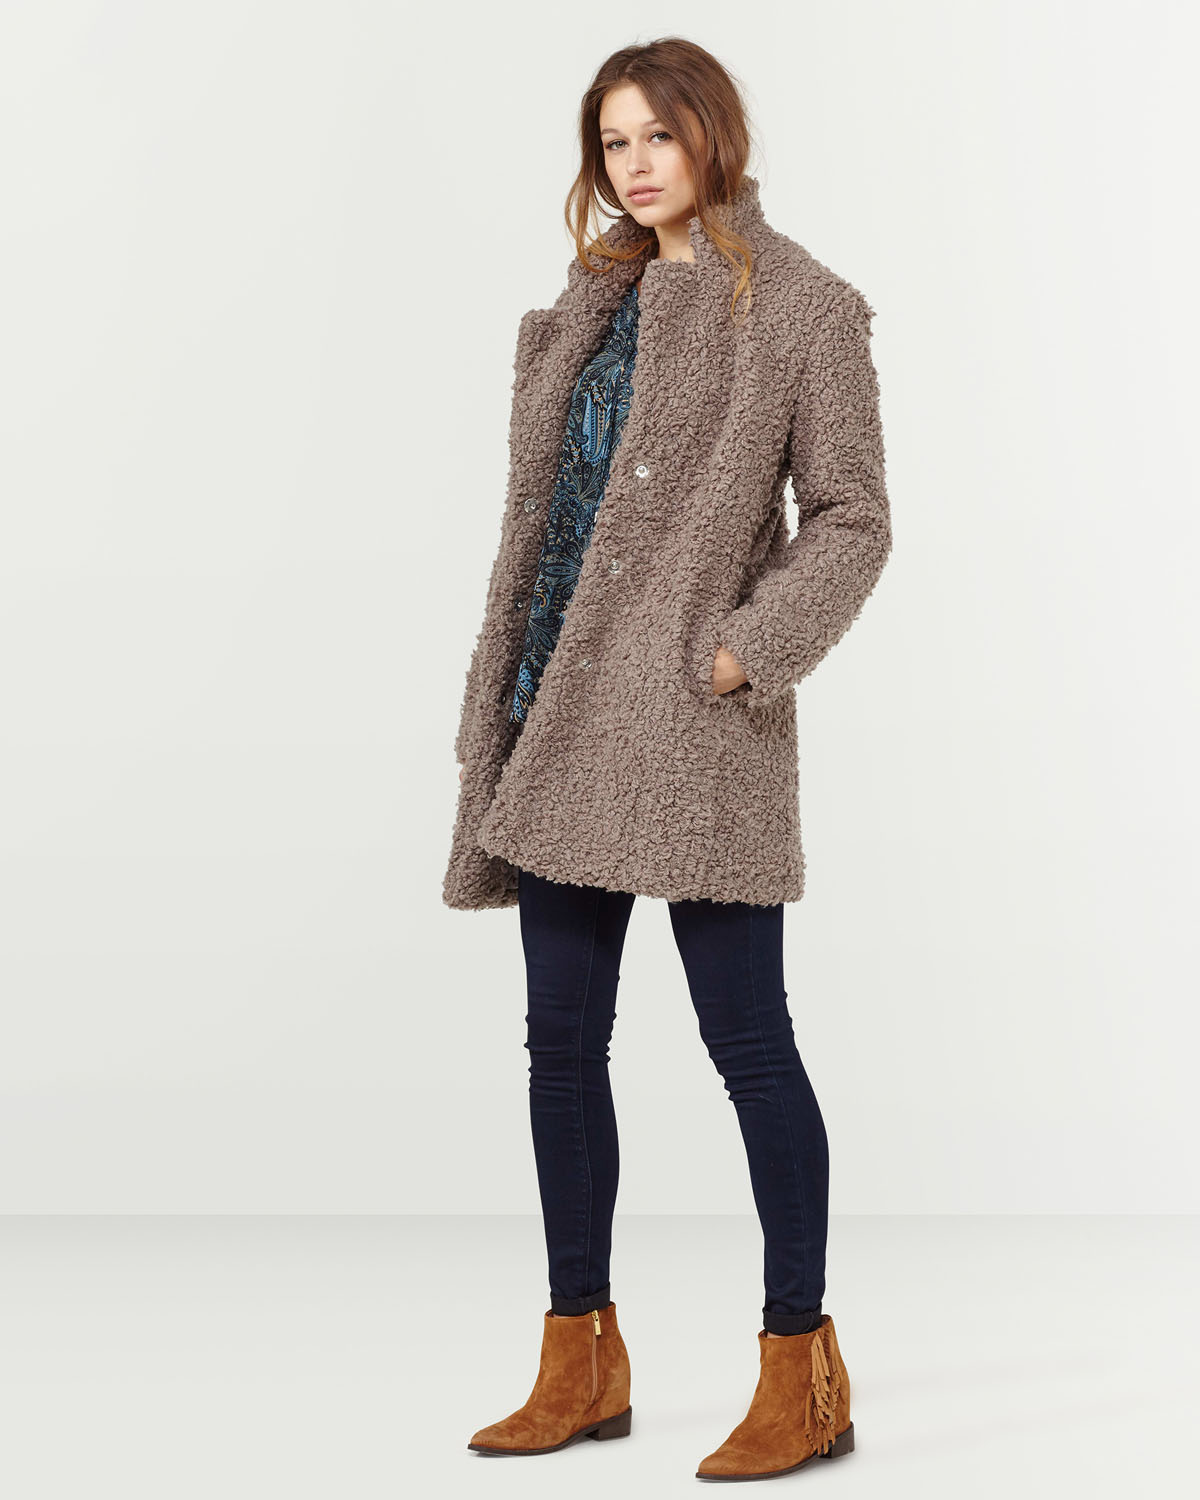 Winterjas Dames Mantel.Dames Teddy Jas 78889781 We Fashion